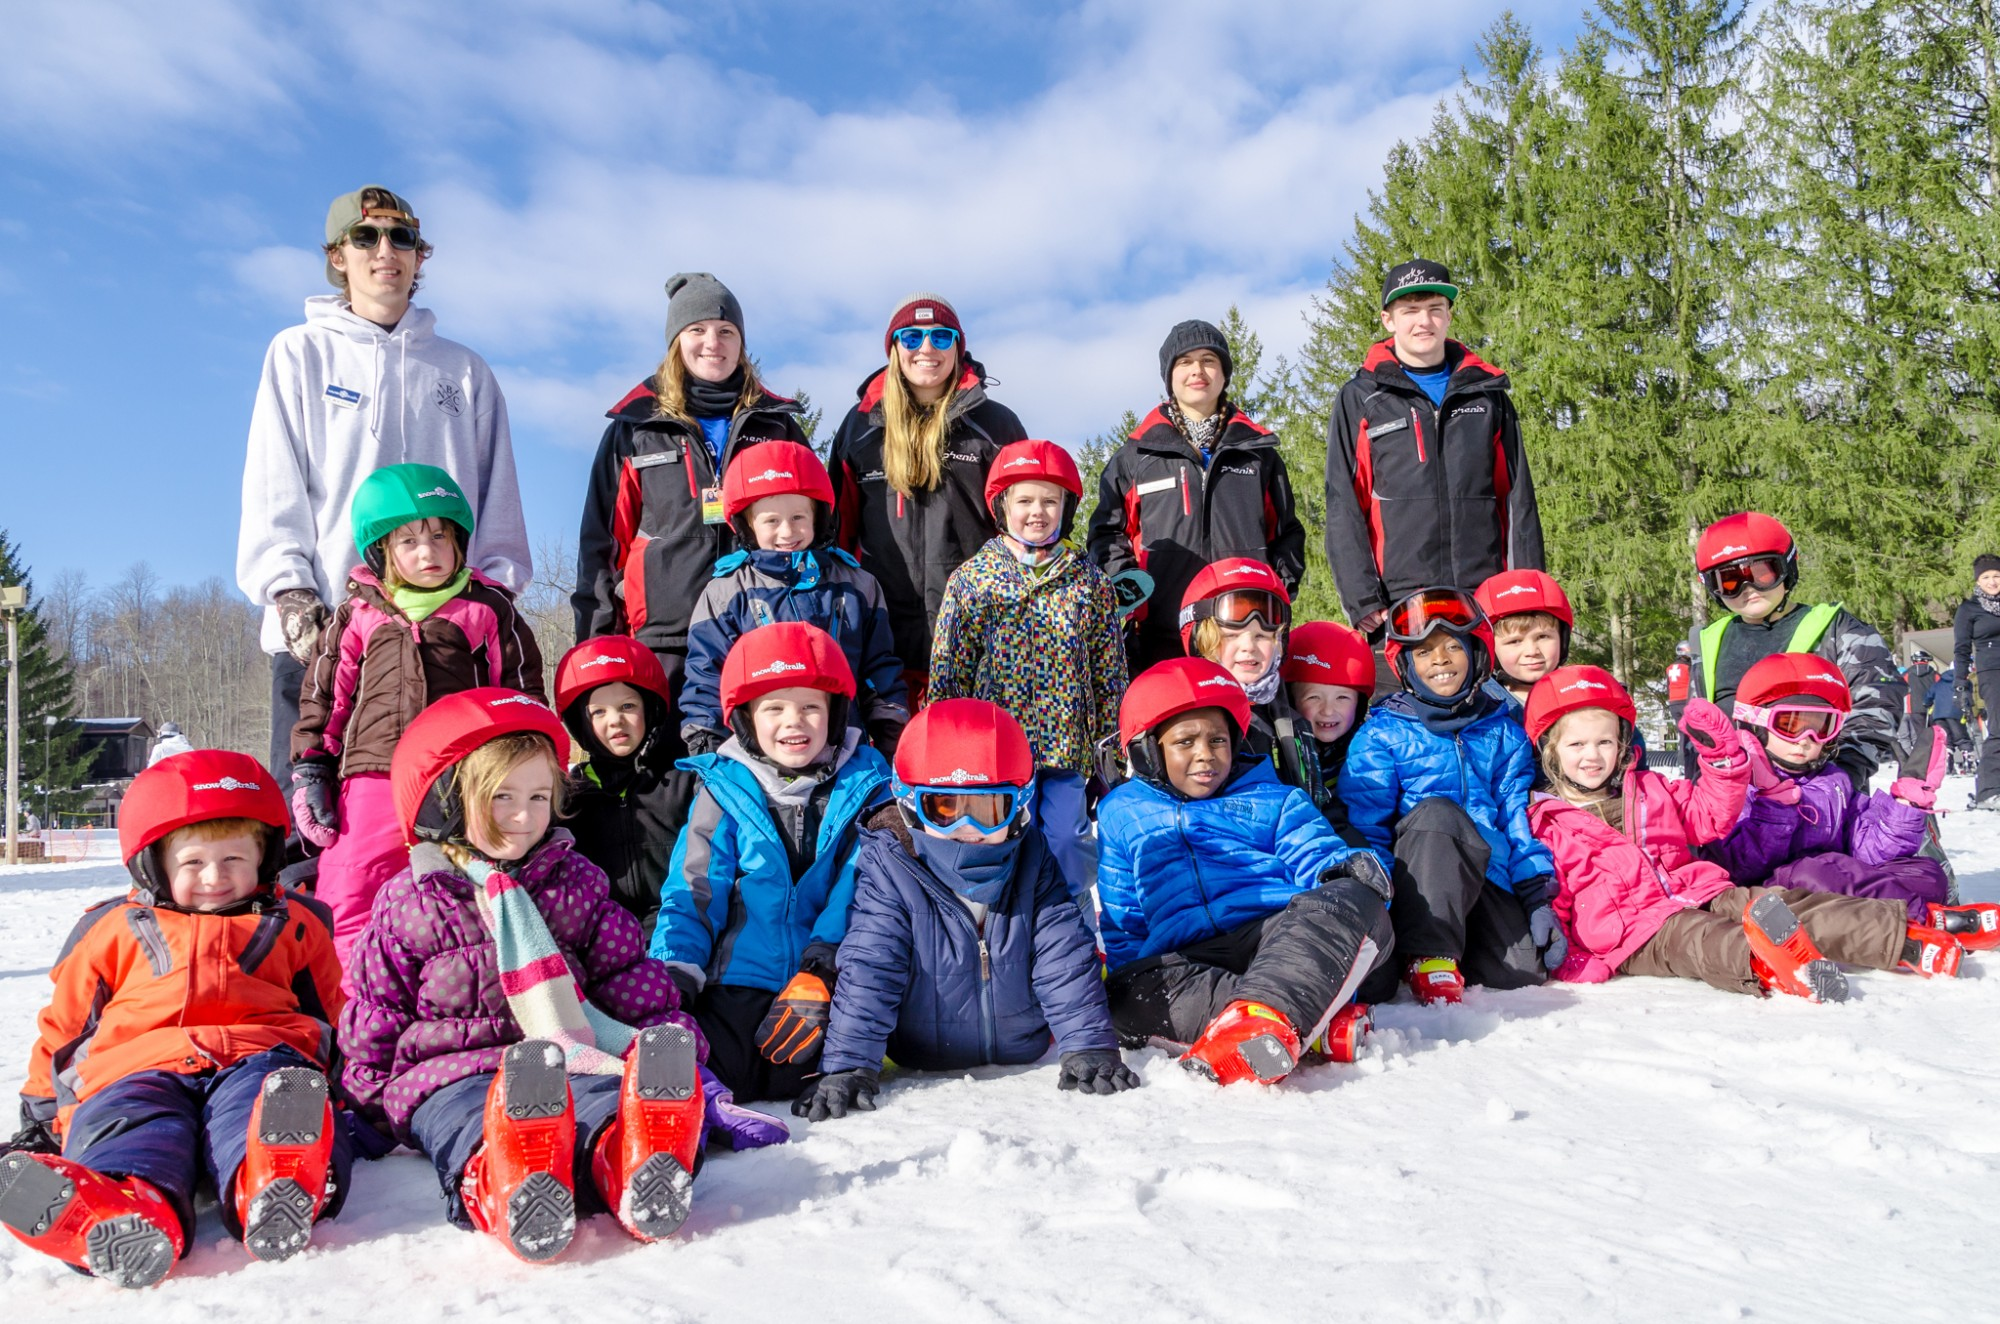 Snow Trails Children's Polar Programs is kid friendly fun on snow